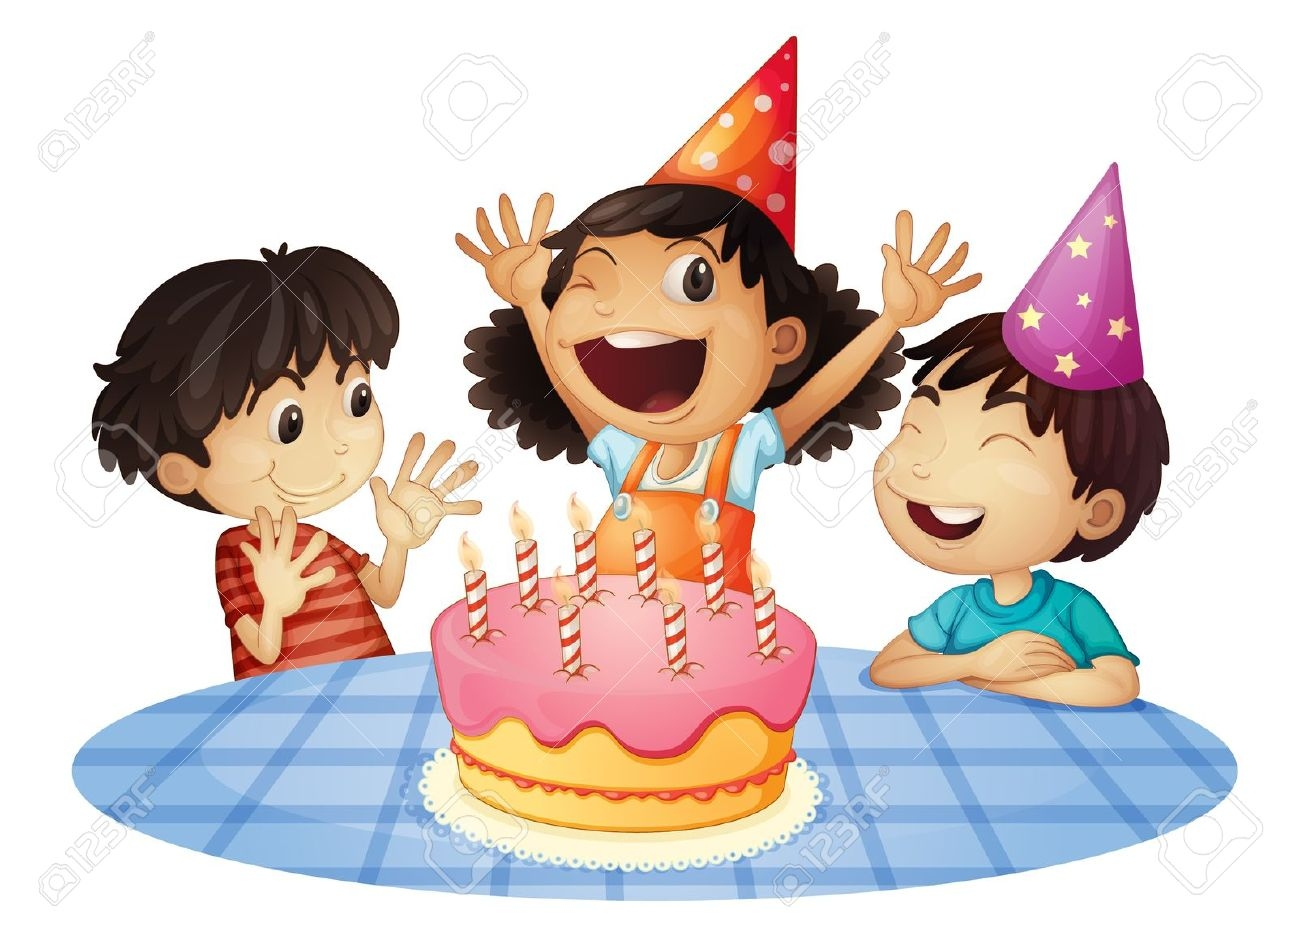 birthday party clipart ; 1962717